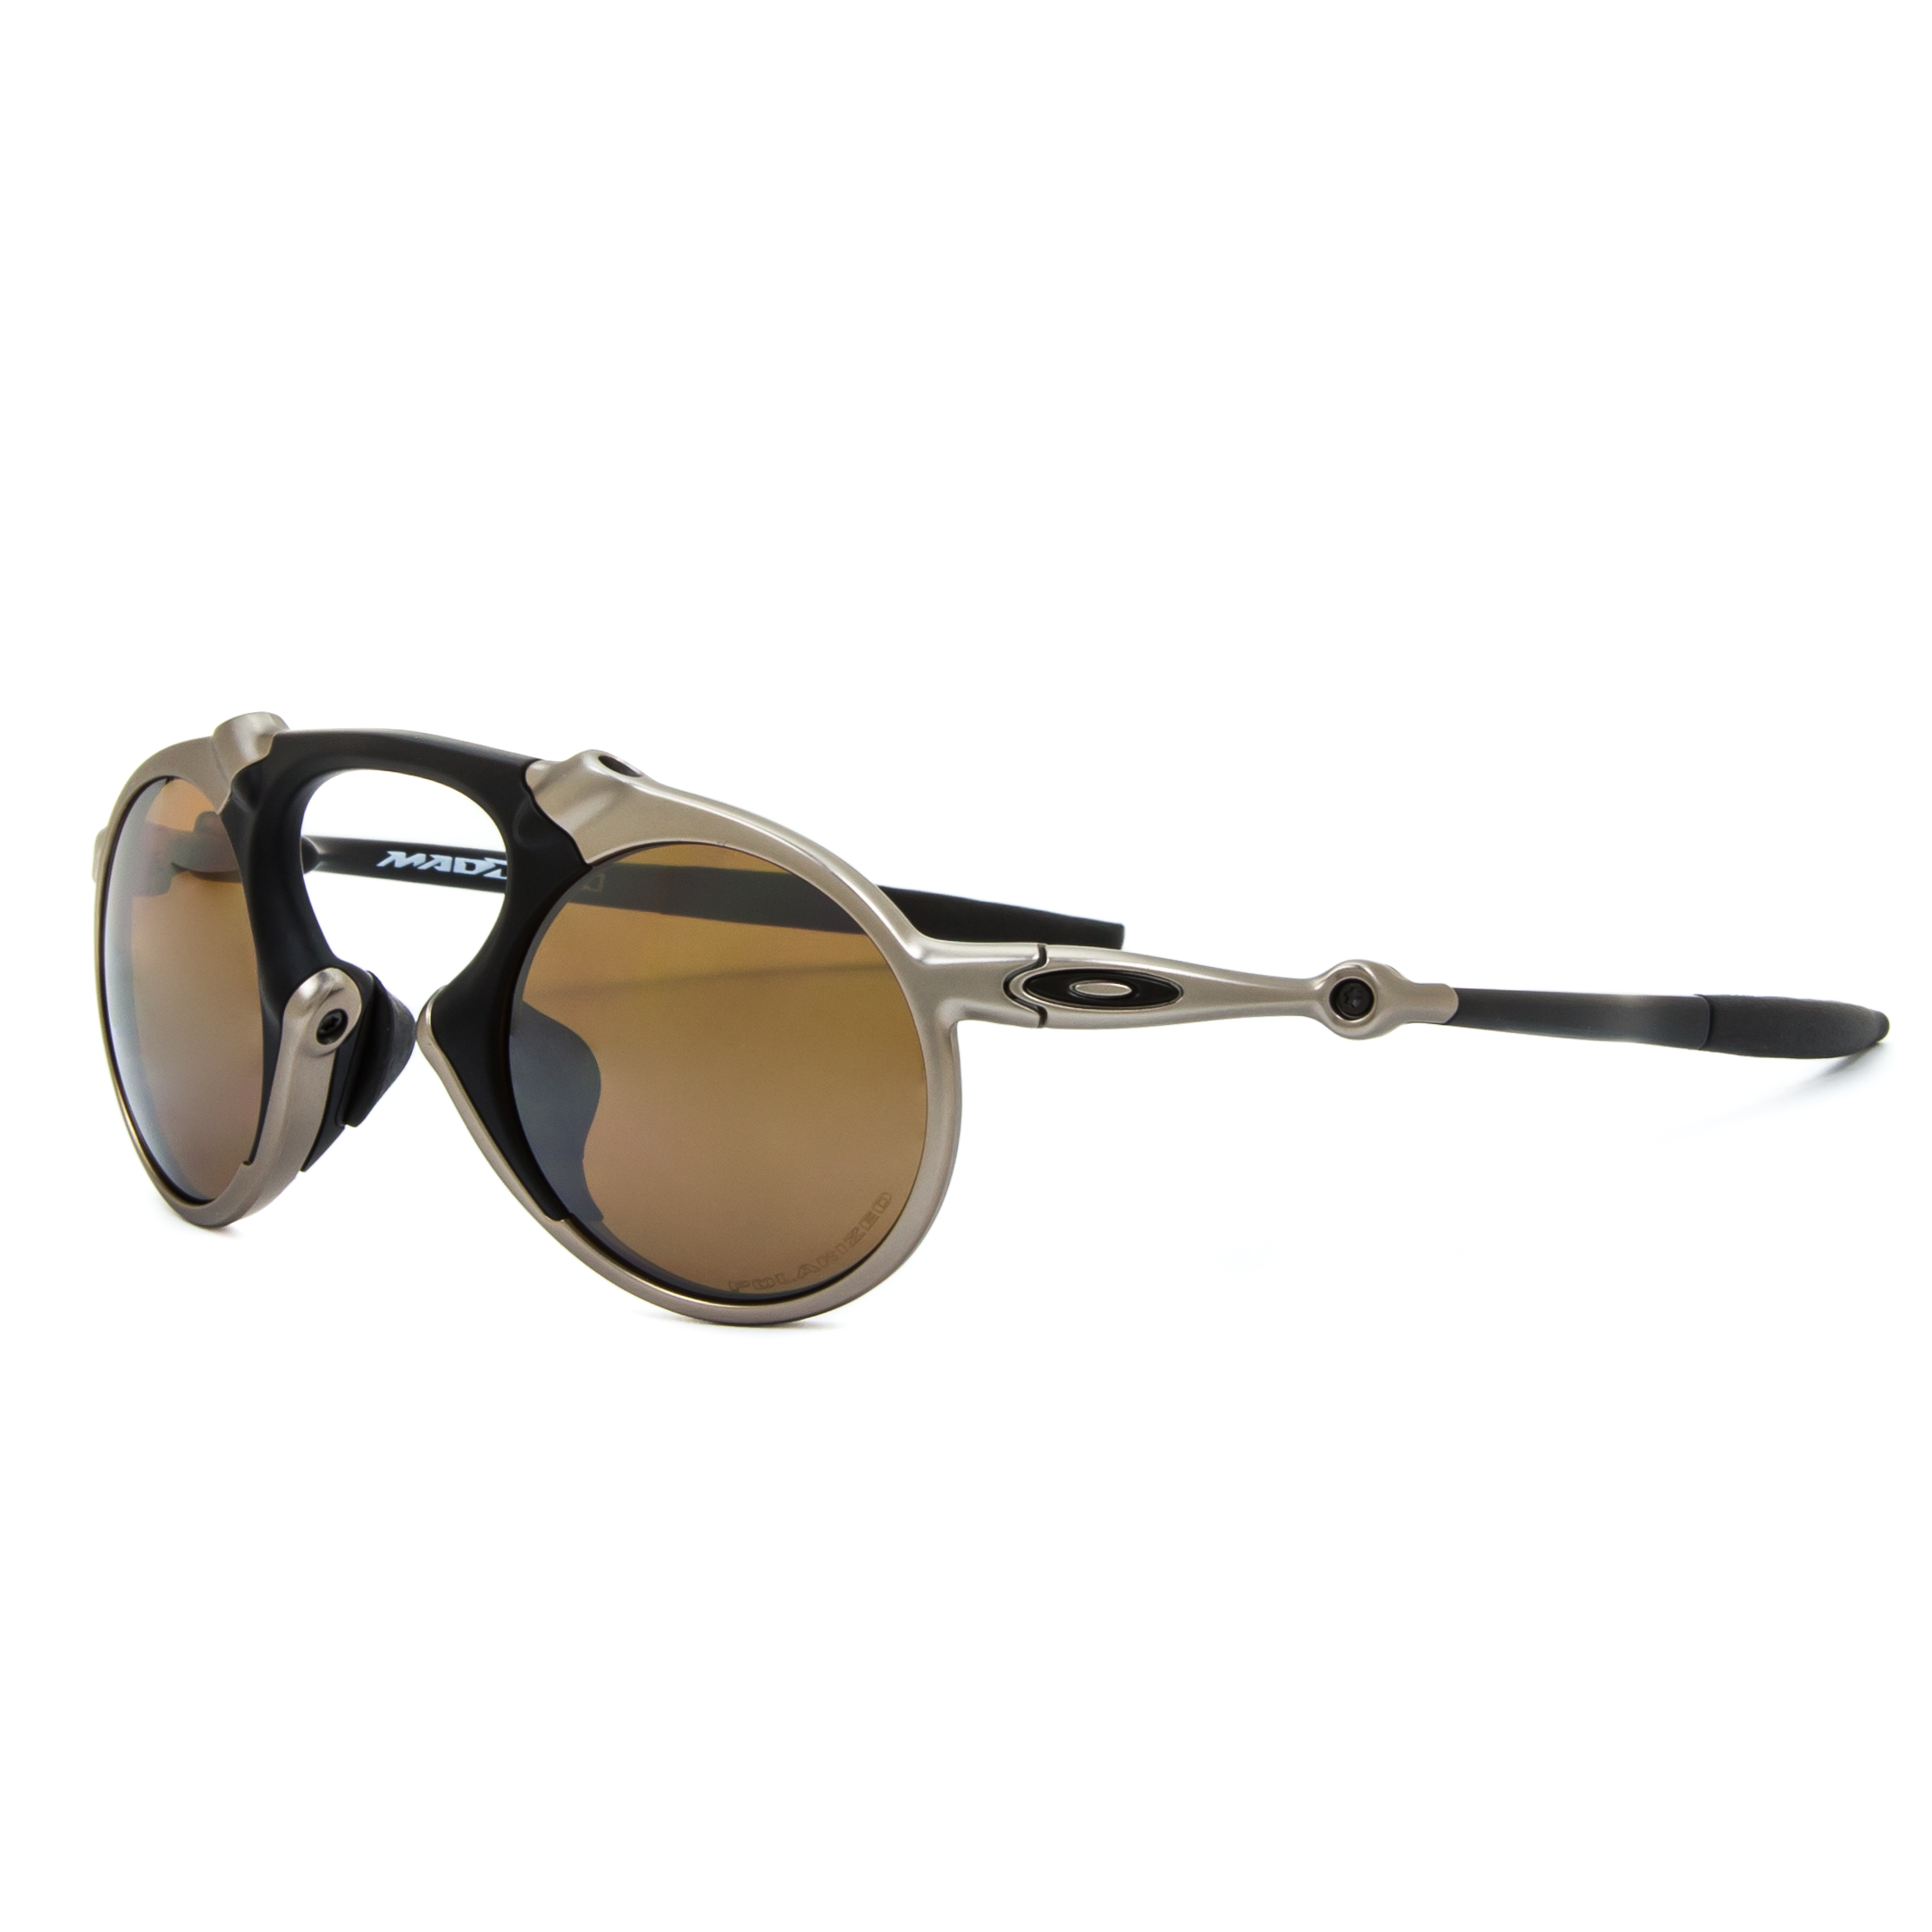 for hugo cloth case authentic product sunglasses click enlarge original to stainless men spectacle steel ferrari boss